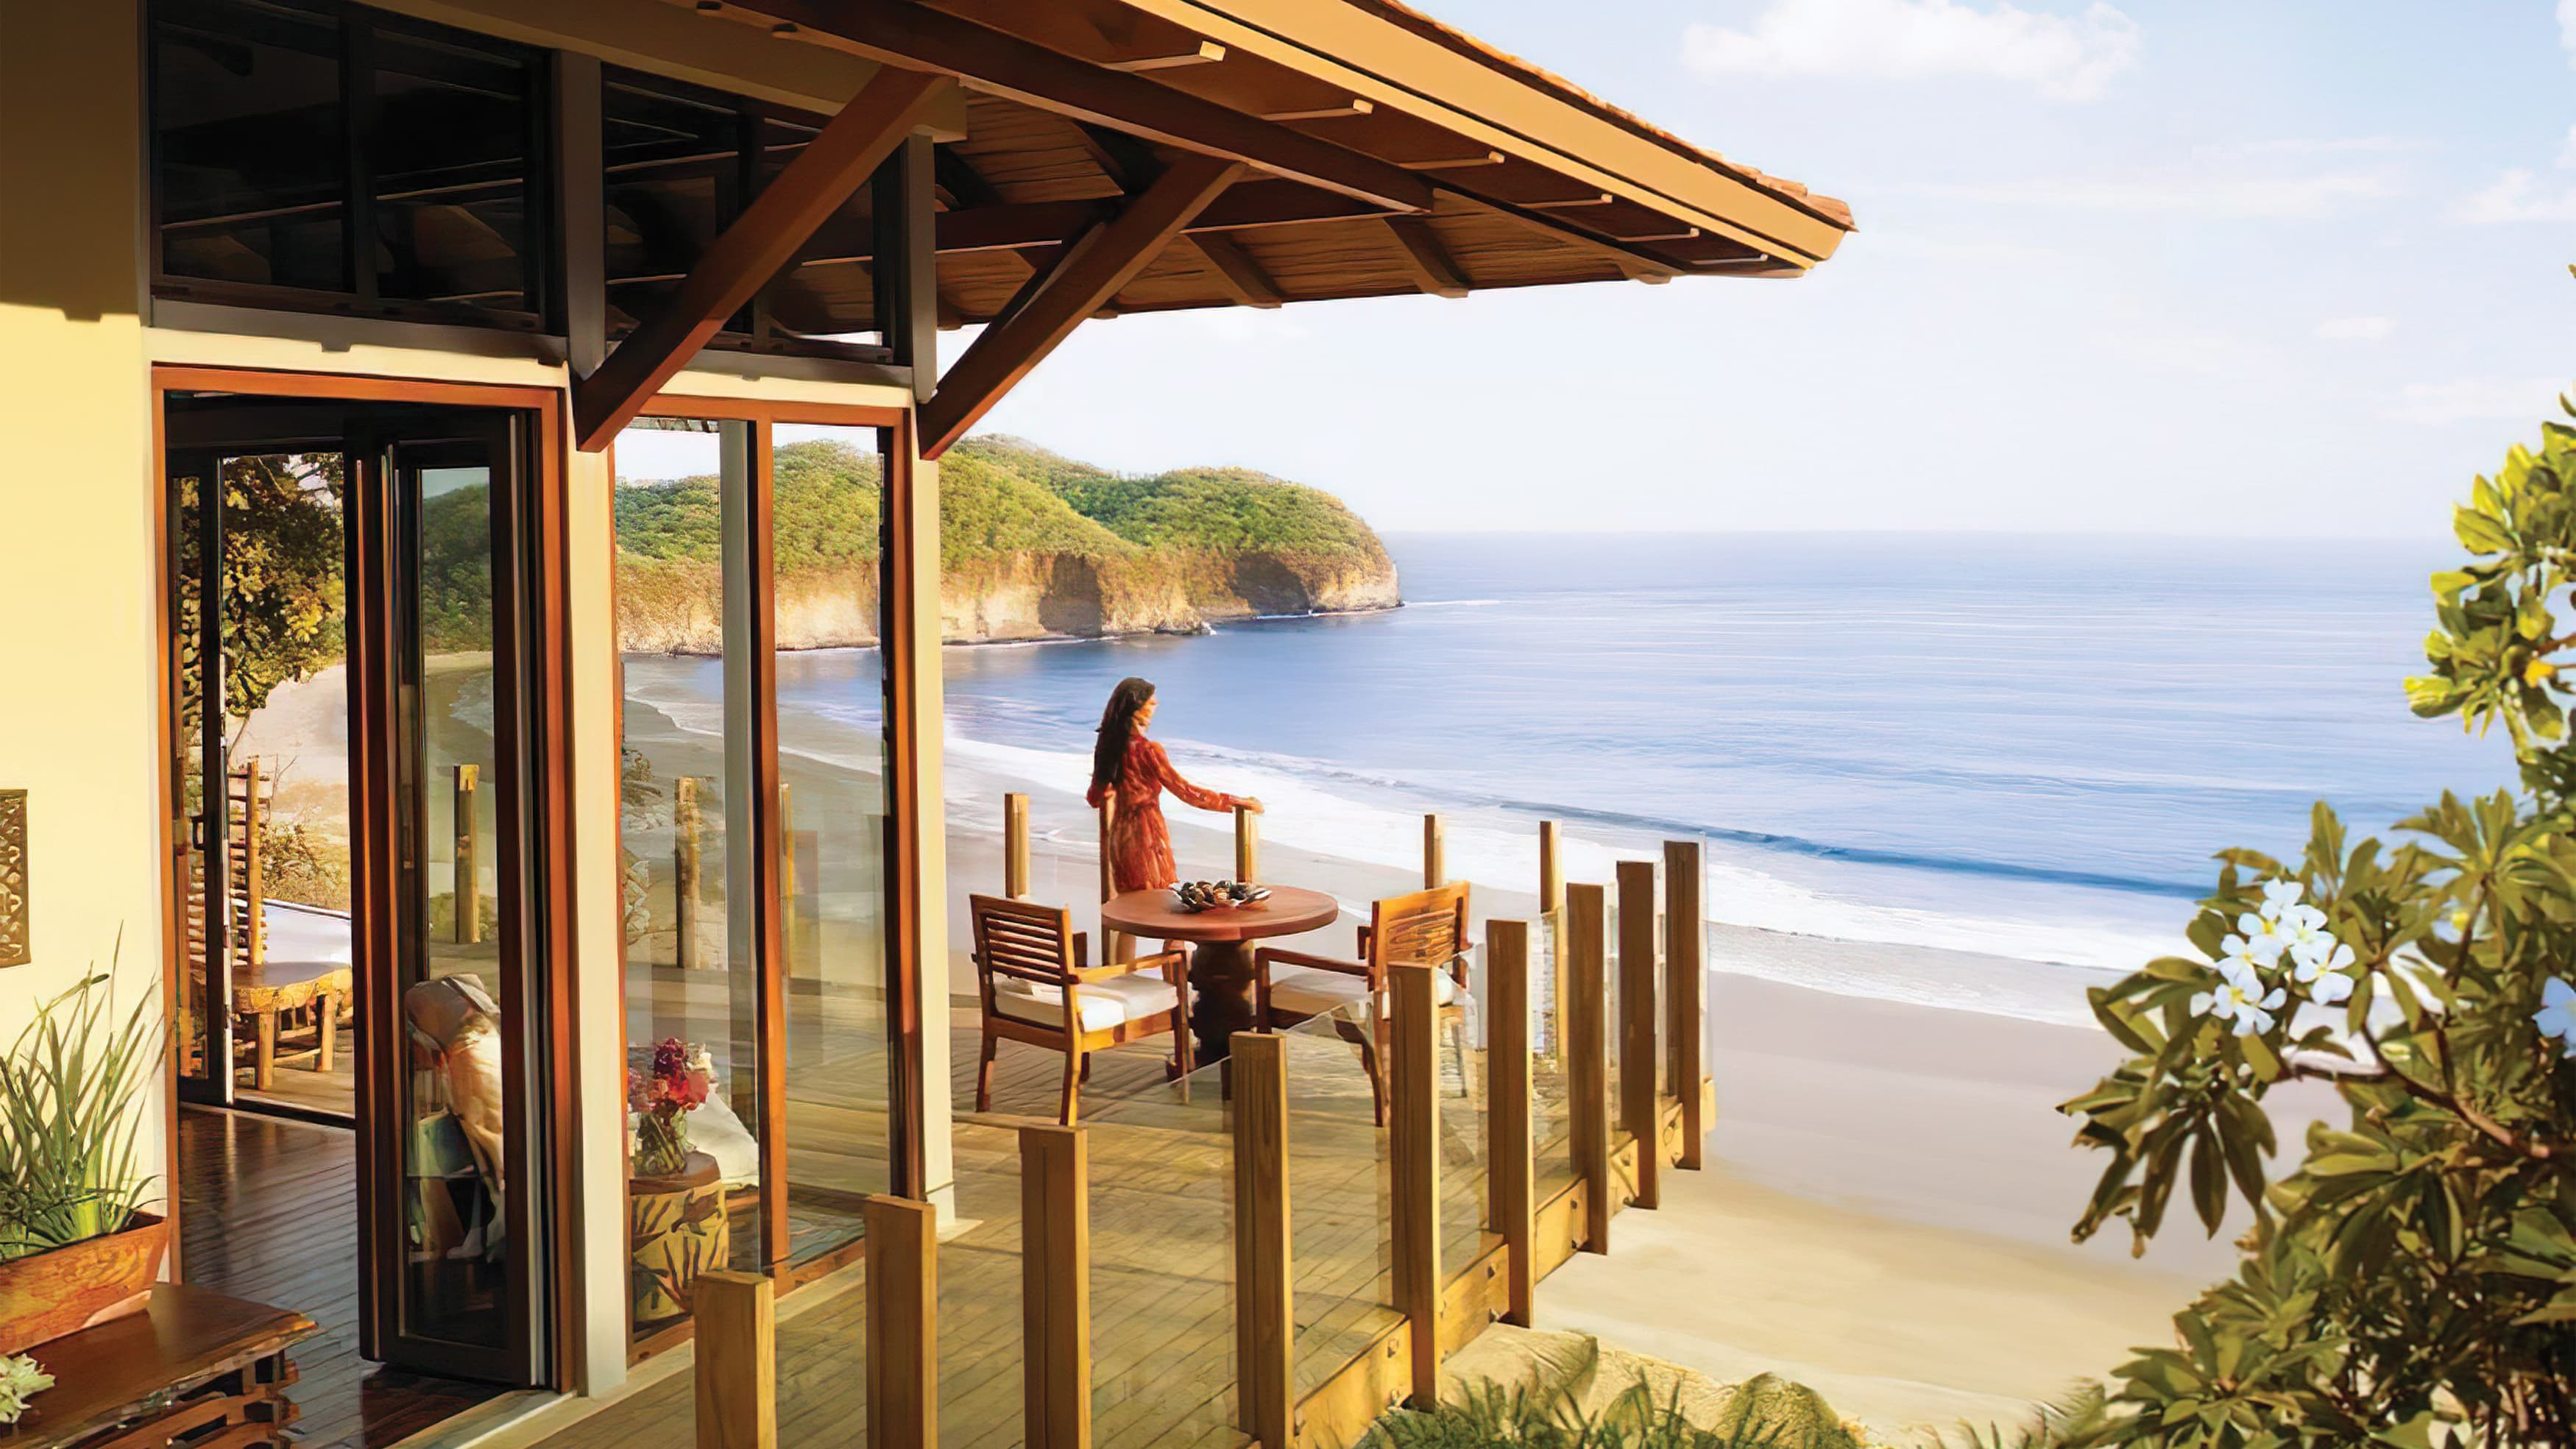 Woman stands on balcony overlooking beautiful tropical beach